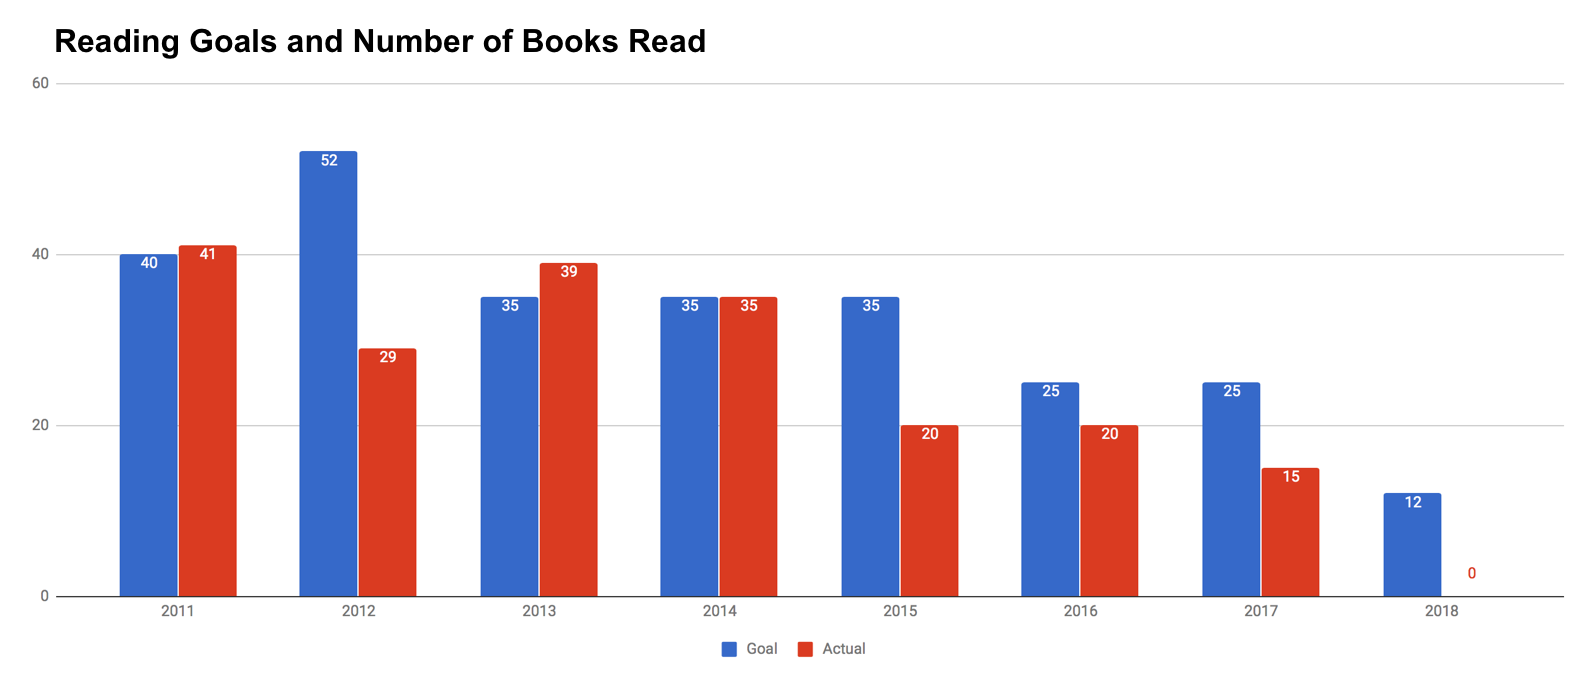 Book Reading Goals vs Books Read from 2011 to 2017